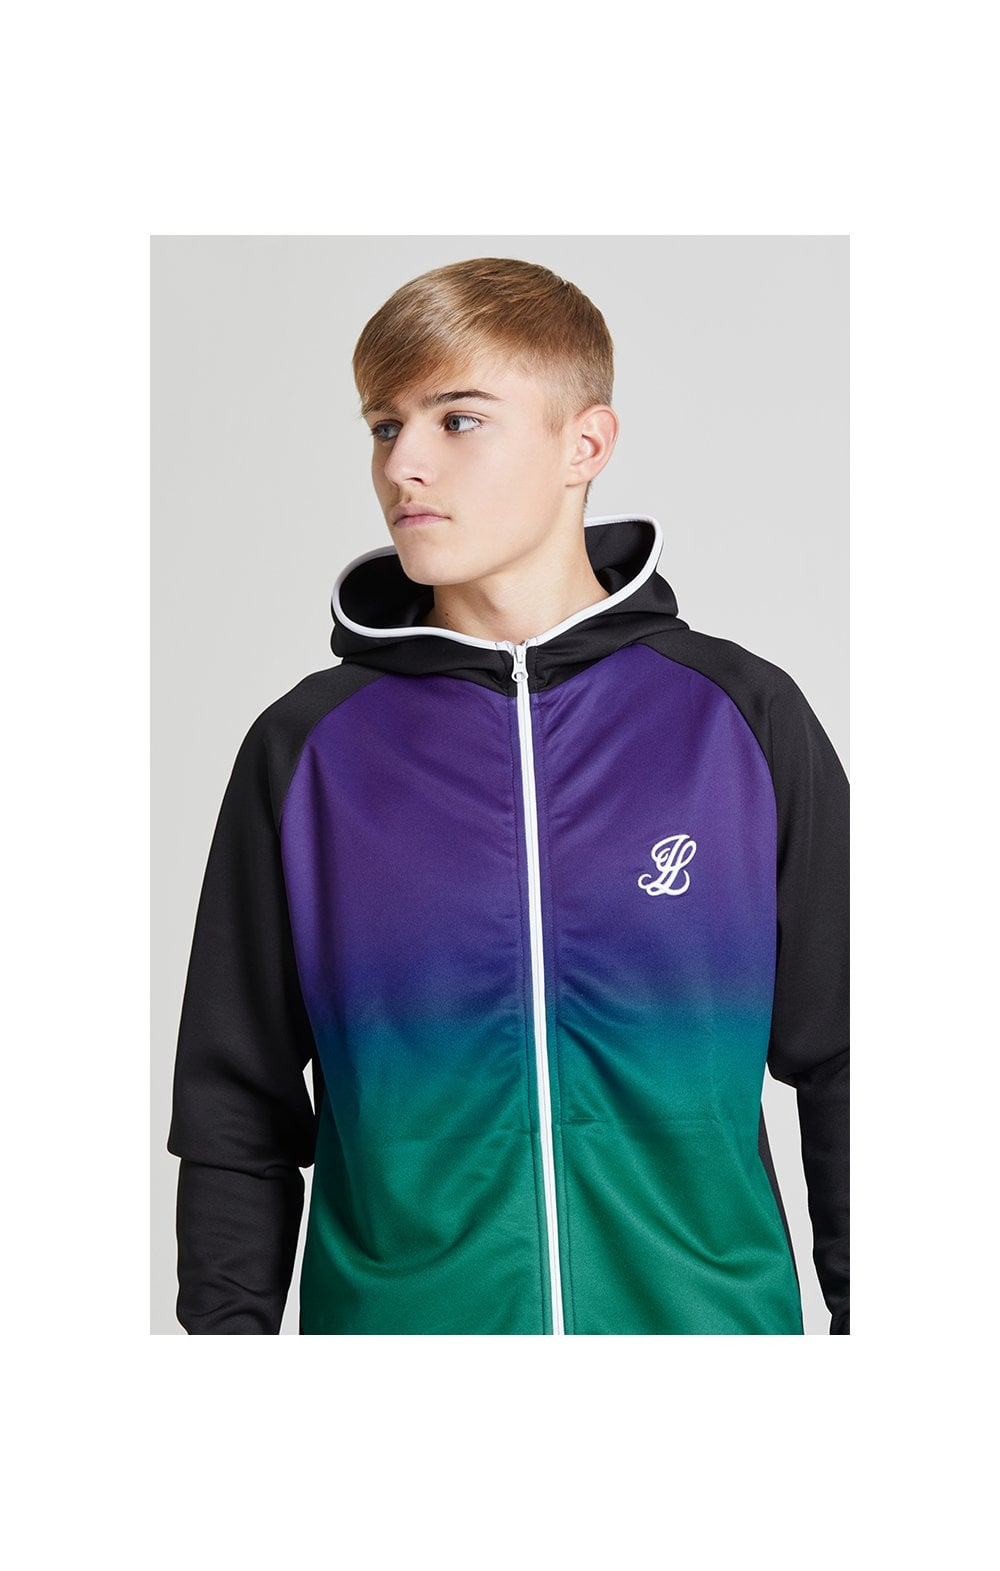 Illusive London Fade Athlete Hoodie  Black, Purple & Teal Green Kids Top Sizes: 9-10 YRS